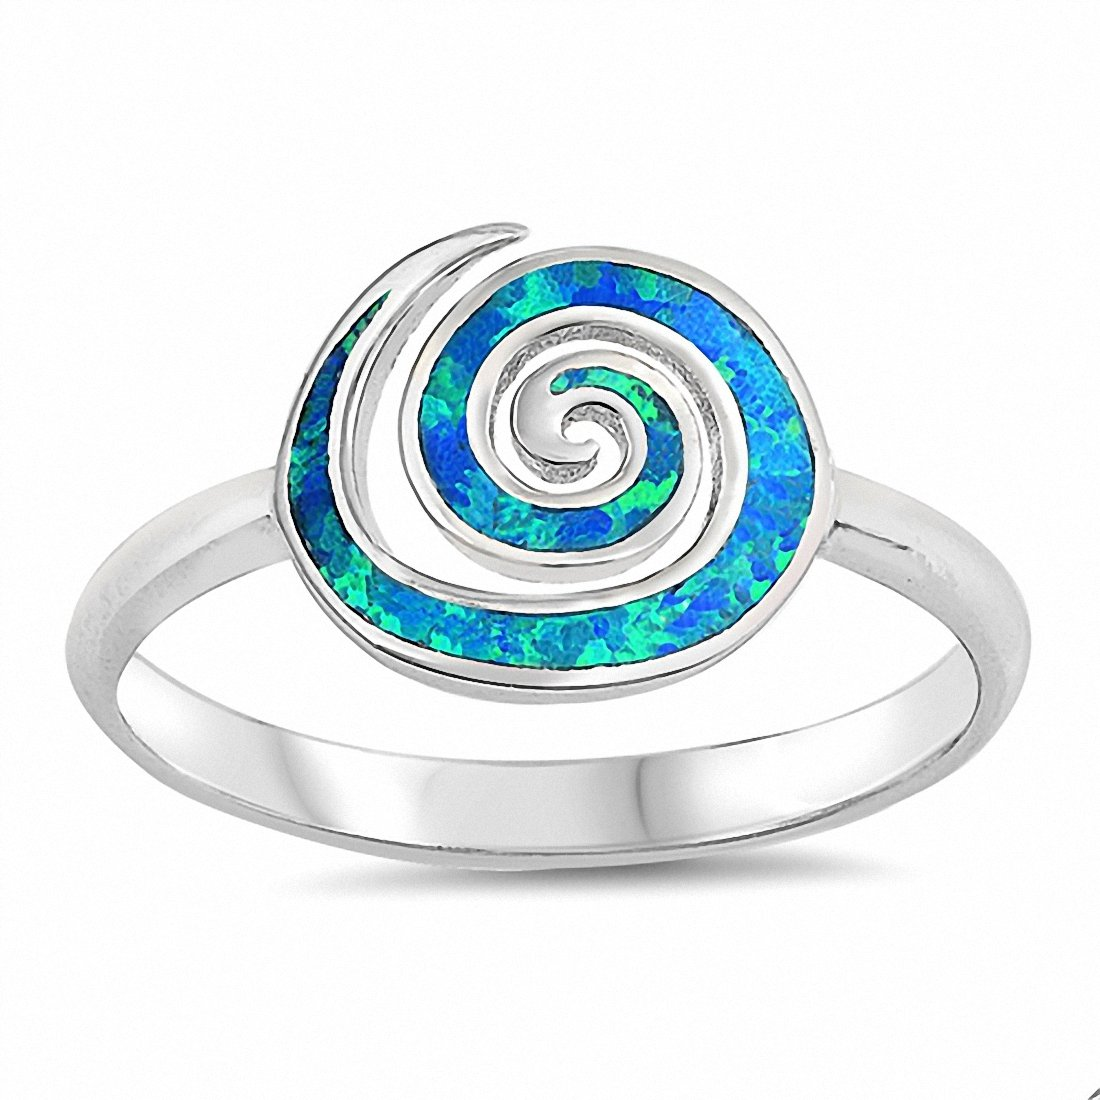 Swirl Spiral Ring Created Opal 925 Sterling Silver (10mm)